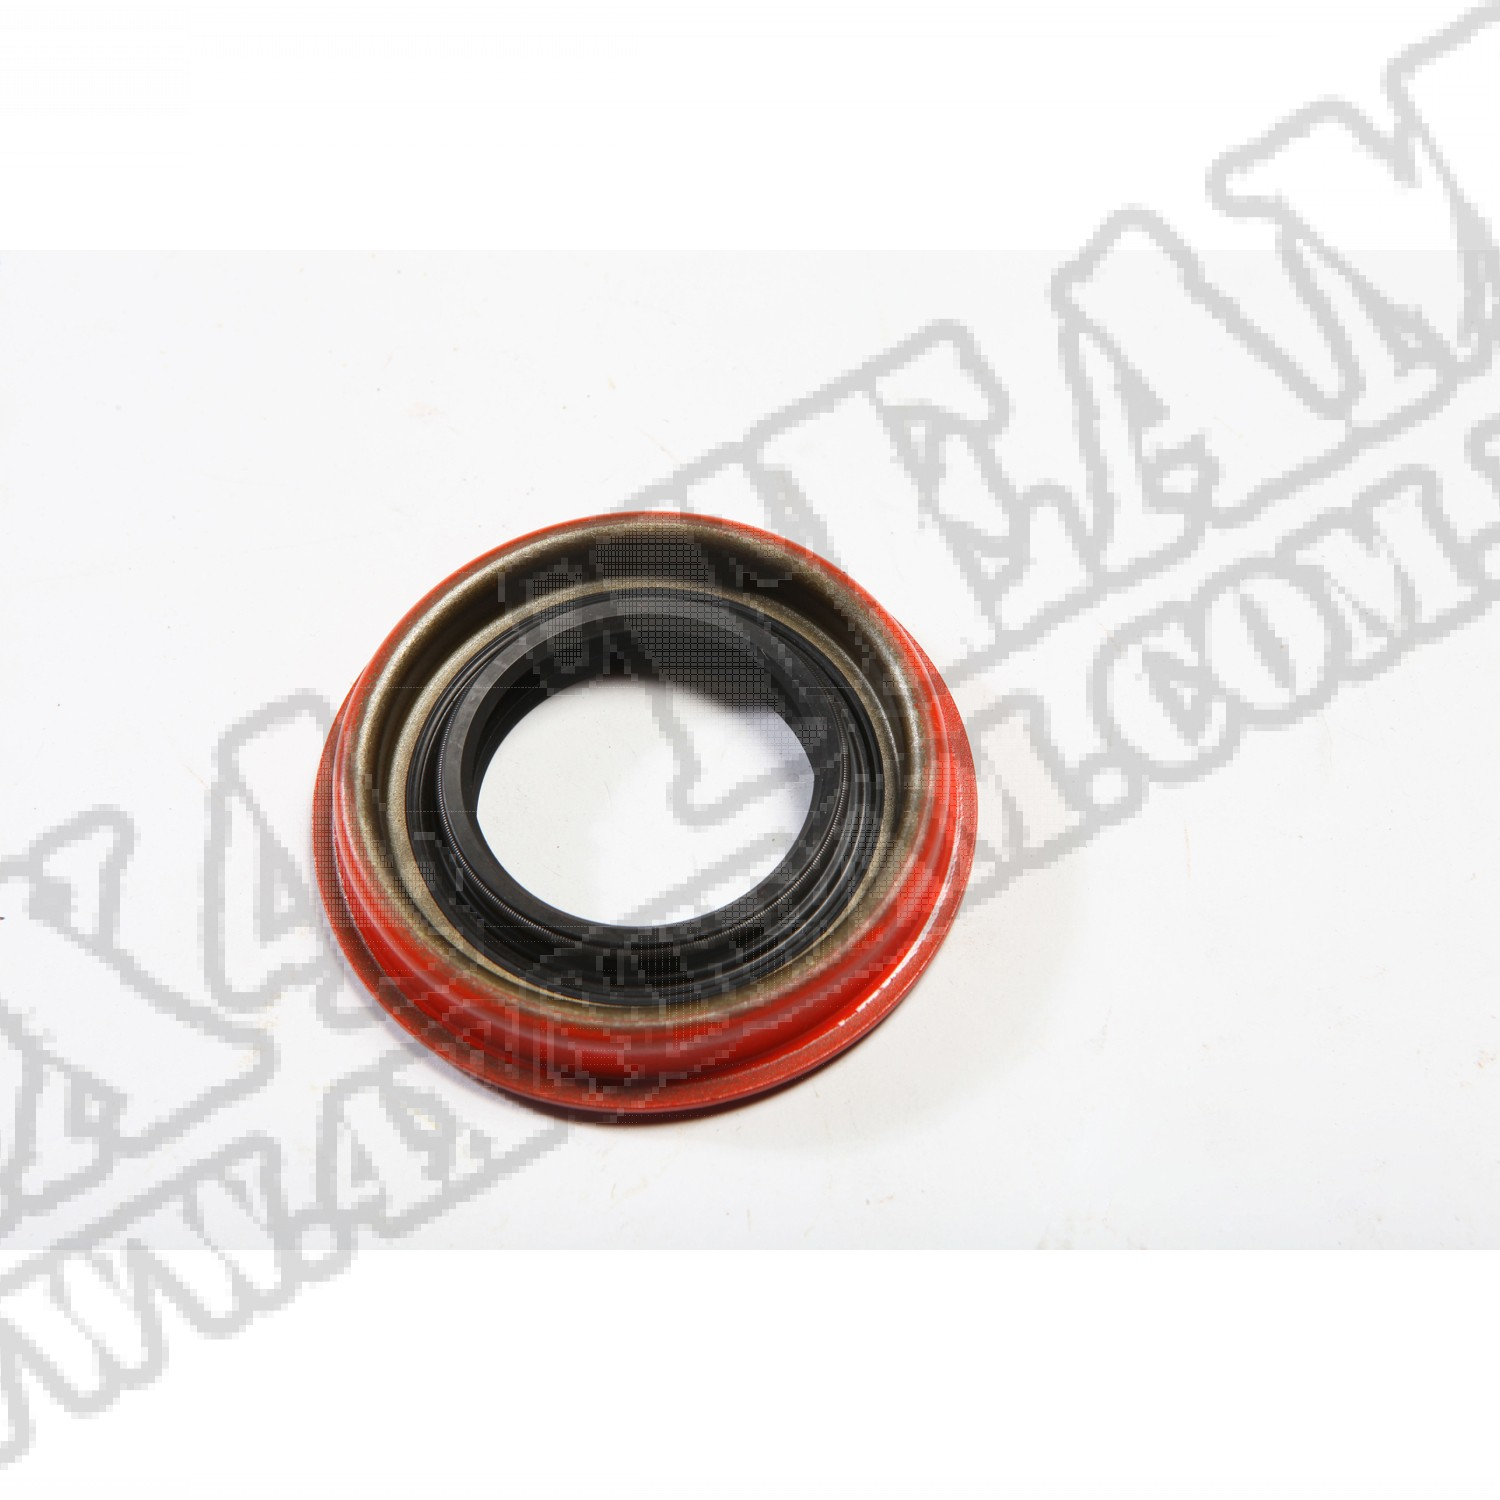 Differential Pinion Seal; 99-16 Ford Excursion/F-250/F-350, 10.25 Inch